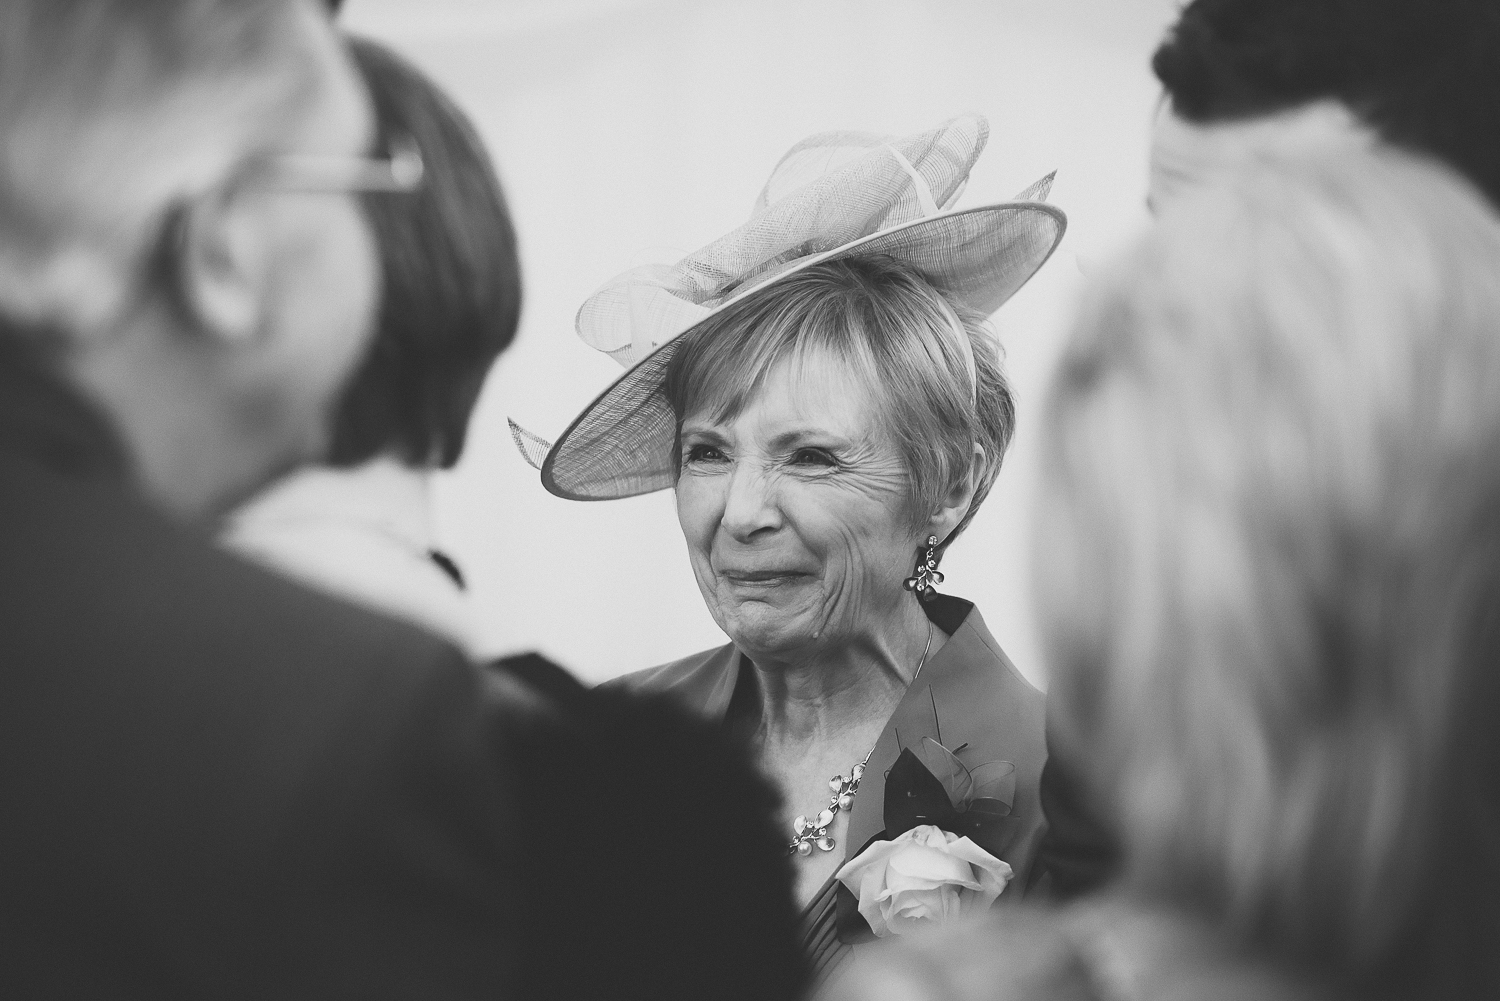 natural-documentary-wedding-photography-cardiff-south-wales-37.jpg